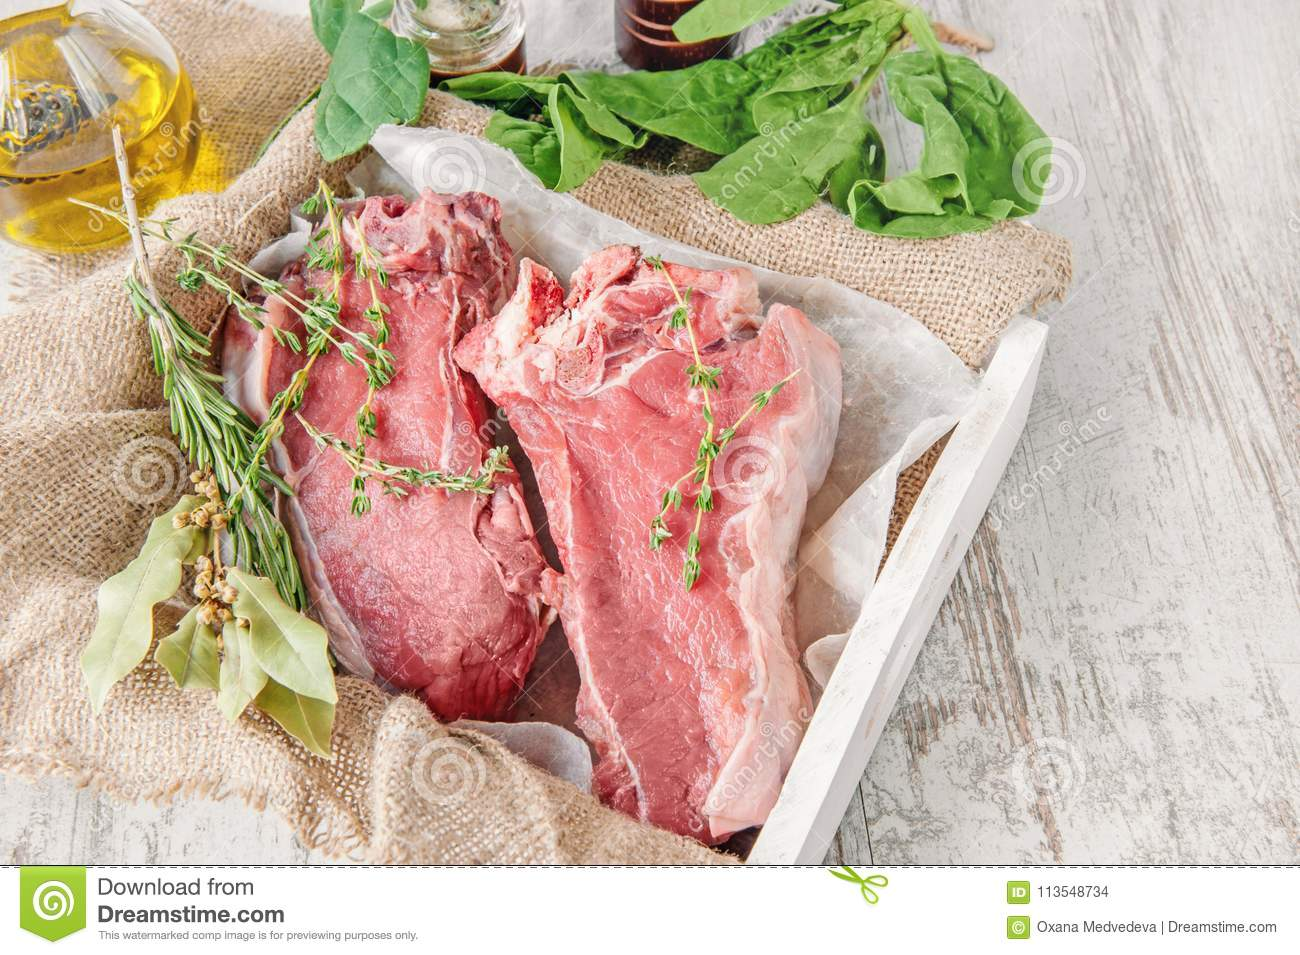 Cuts of beef for grilling on a wooden cutting Board with spinach, rosemary and Provencal herbs for the marinade in a